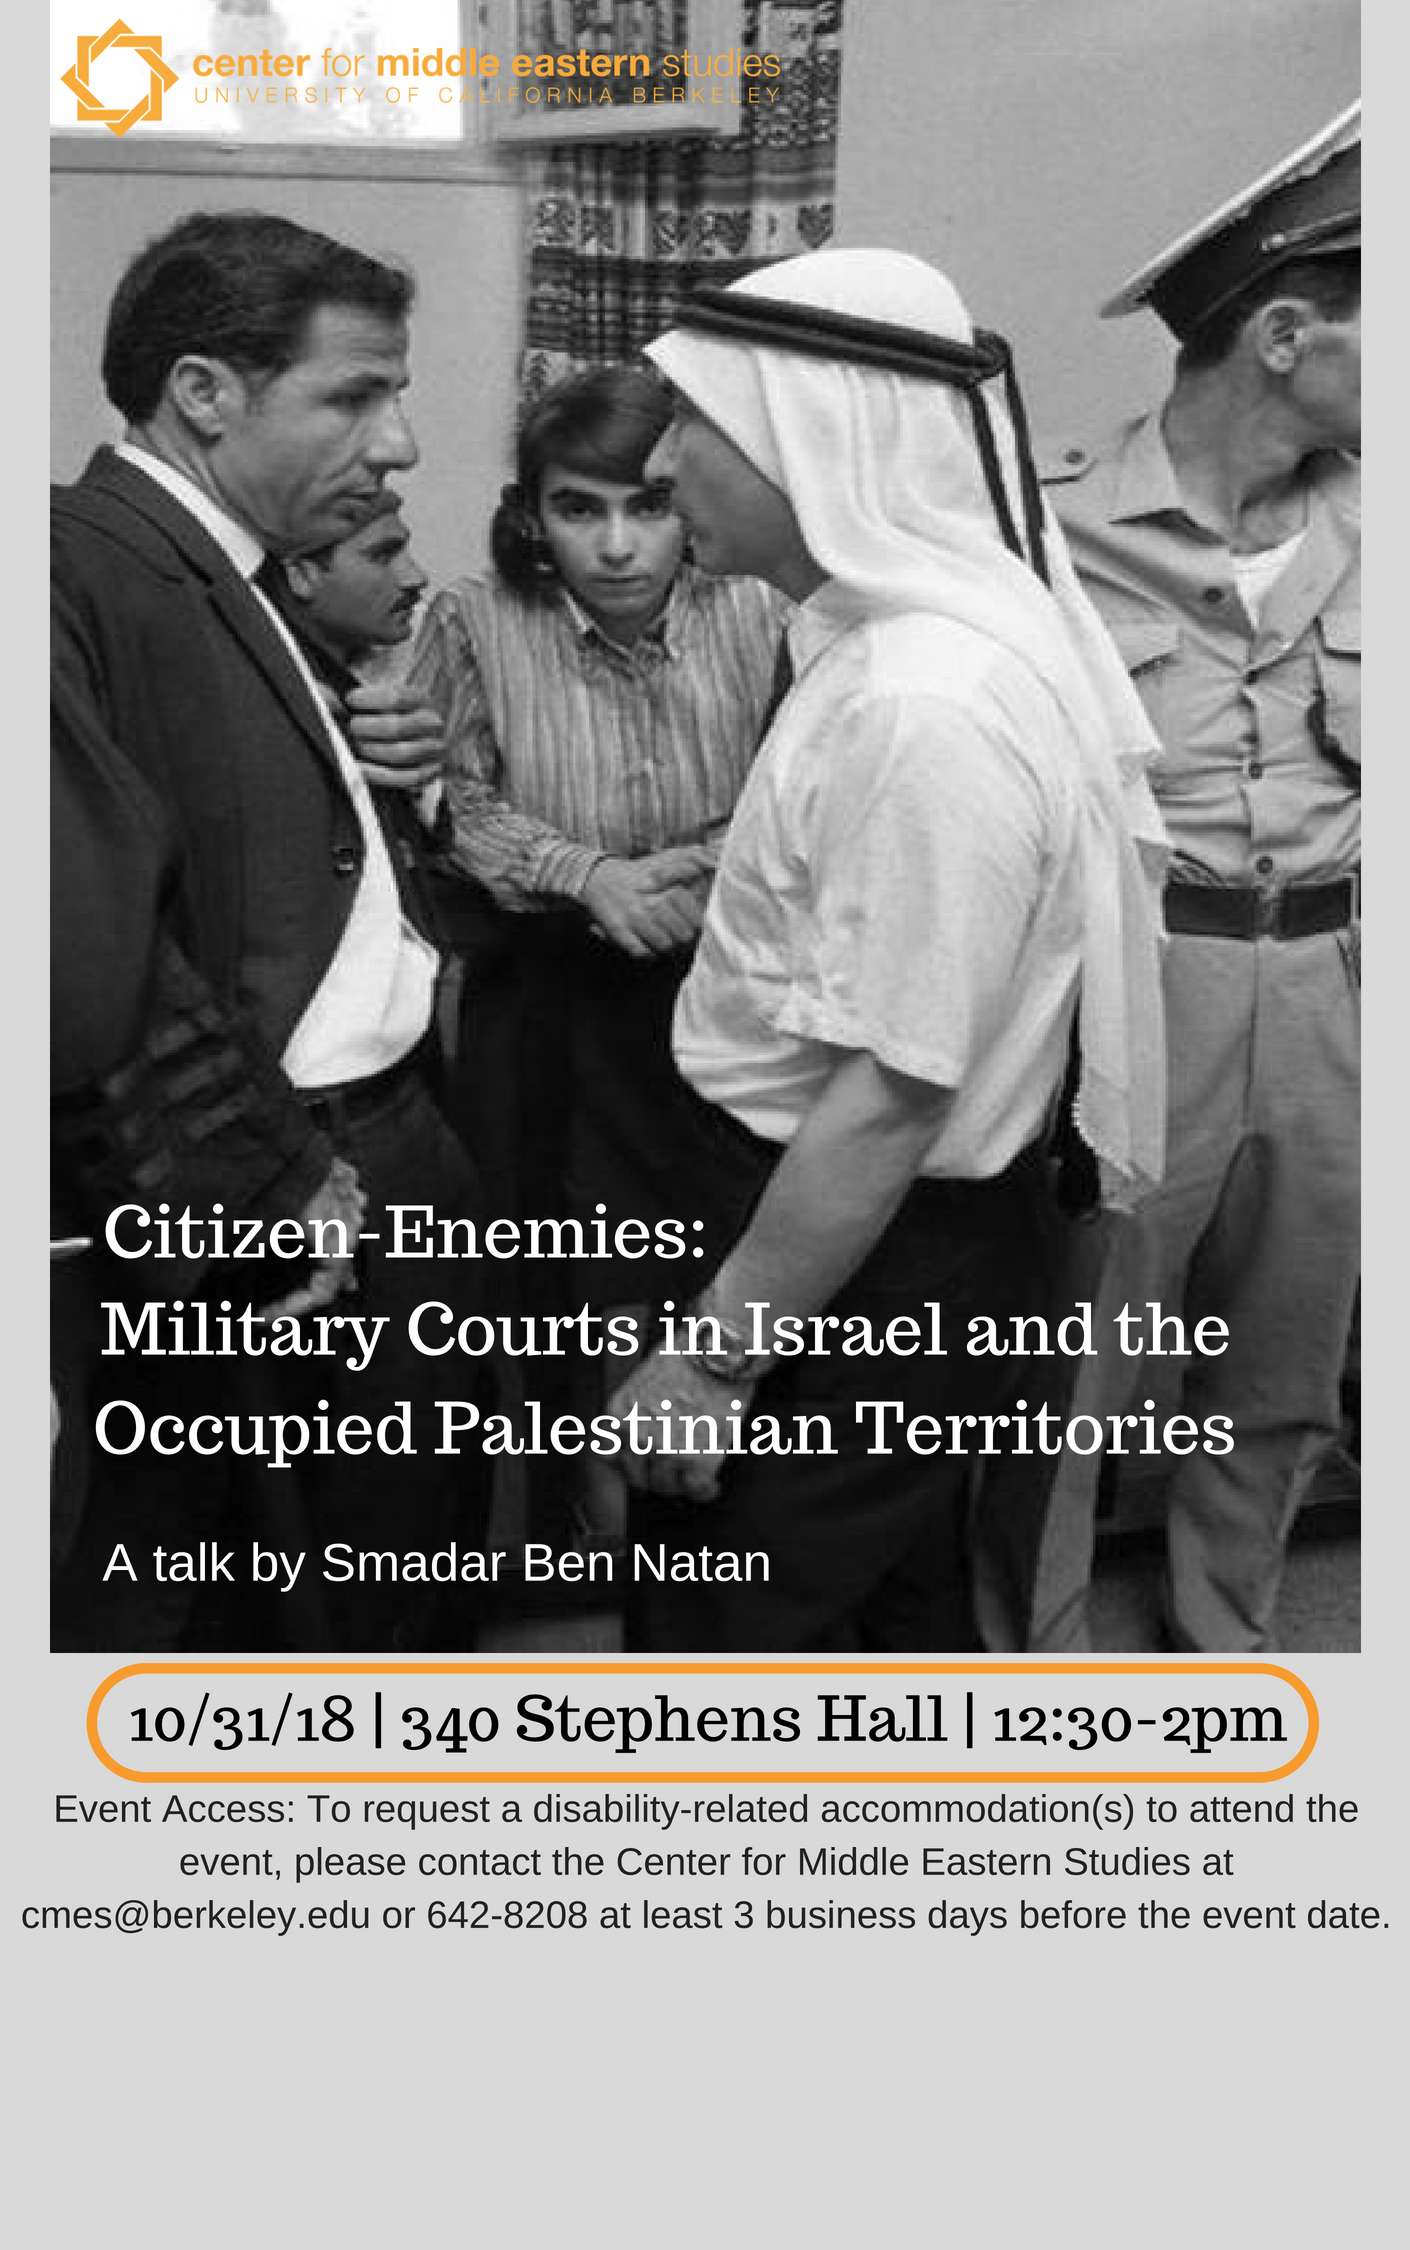 Poster: Citizen Enemies: Military Courts in Israel and the occupied Palestinian Territories